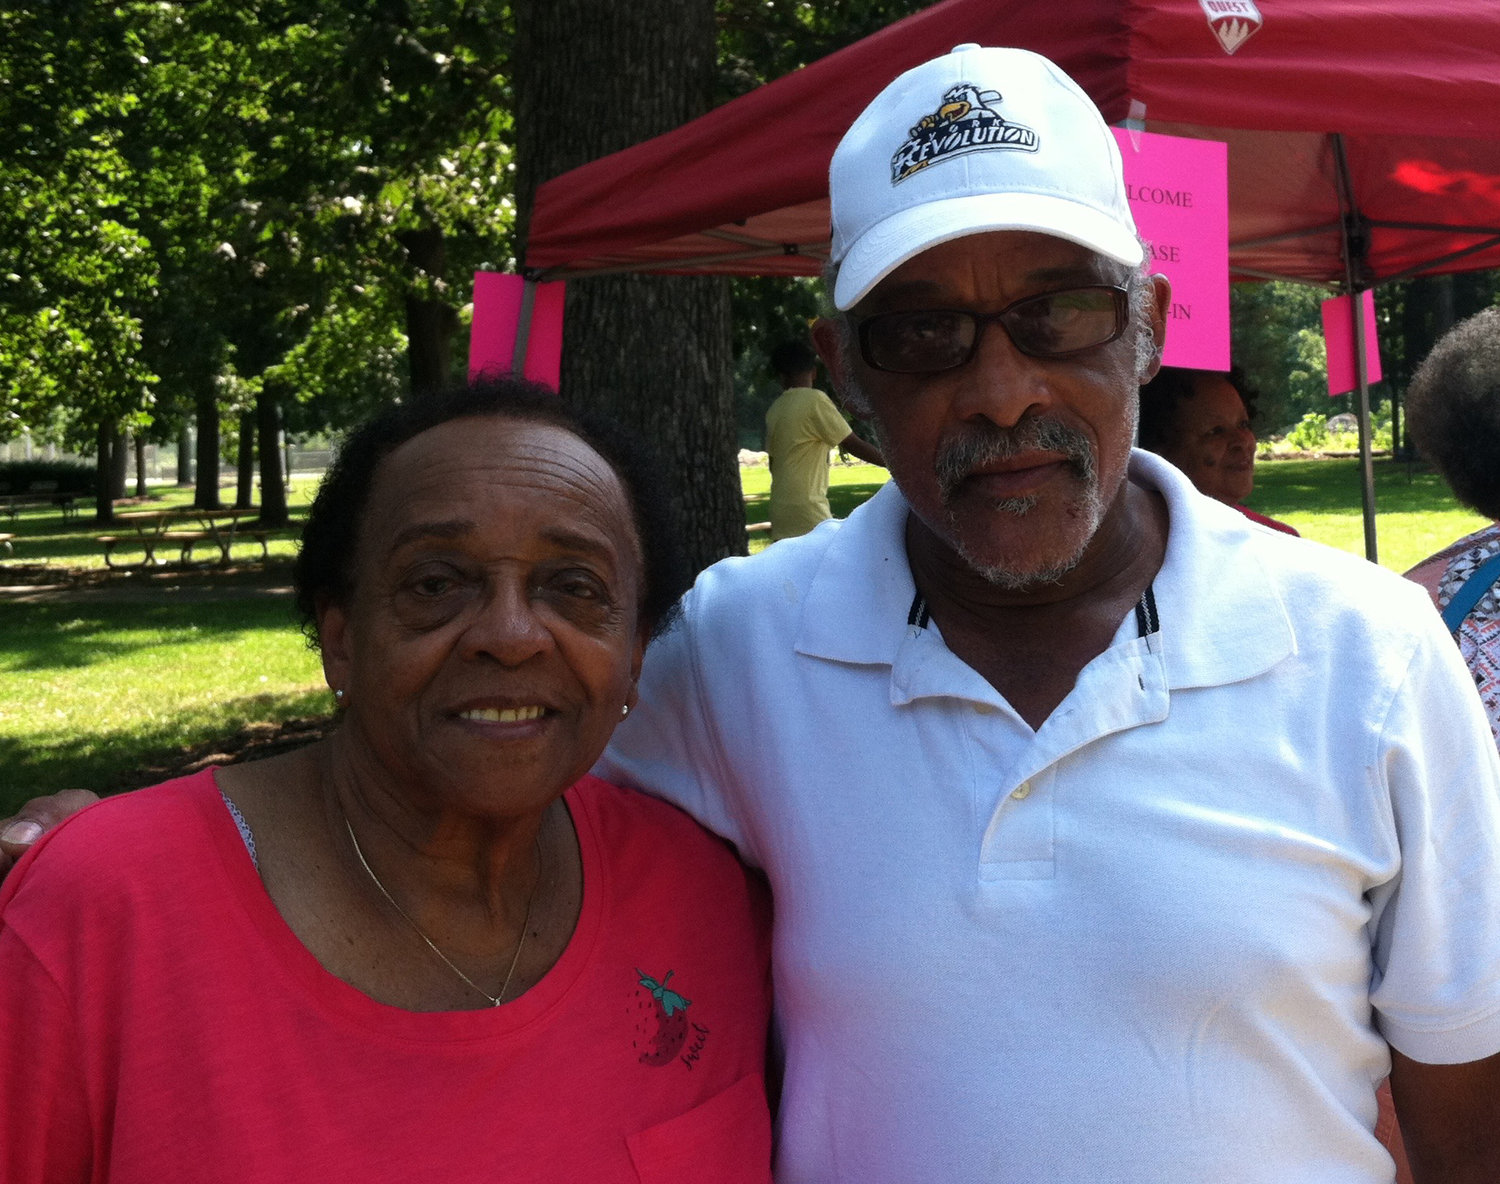 94-year-old Doris Anderson of Middletown with her son, Ron Anderson, during the second annual Middletown Village Reunion at Hoffer Park on Saturday.